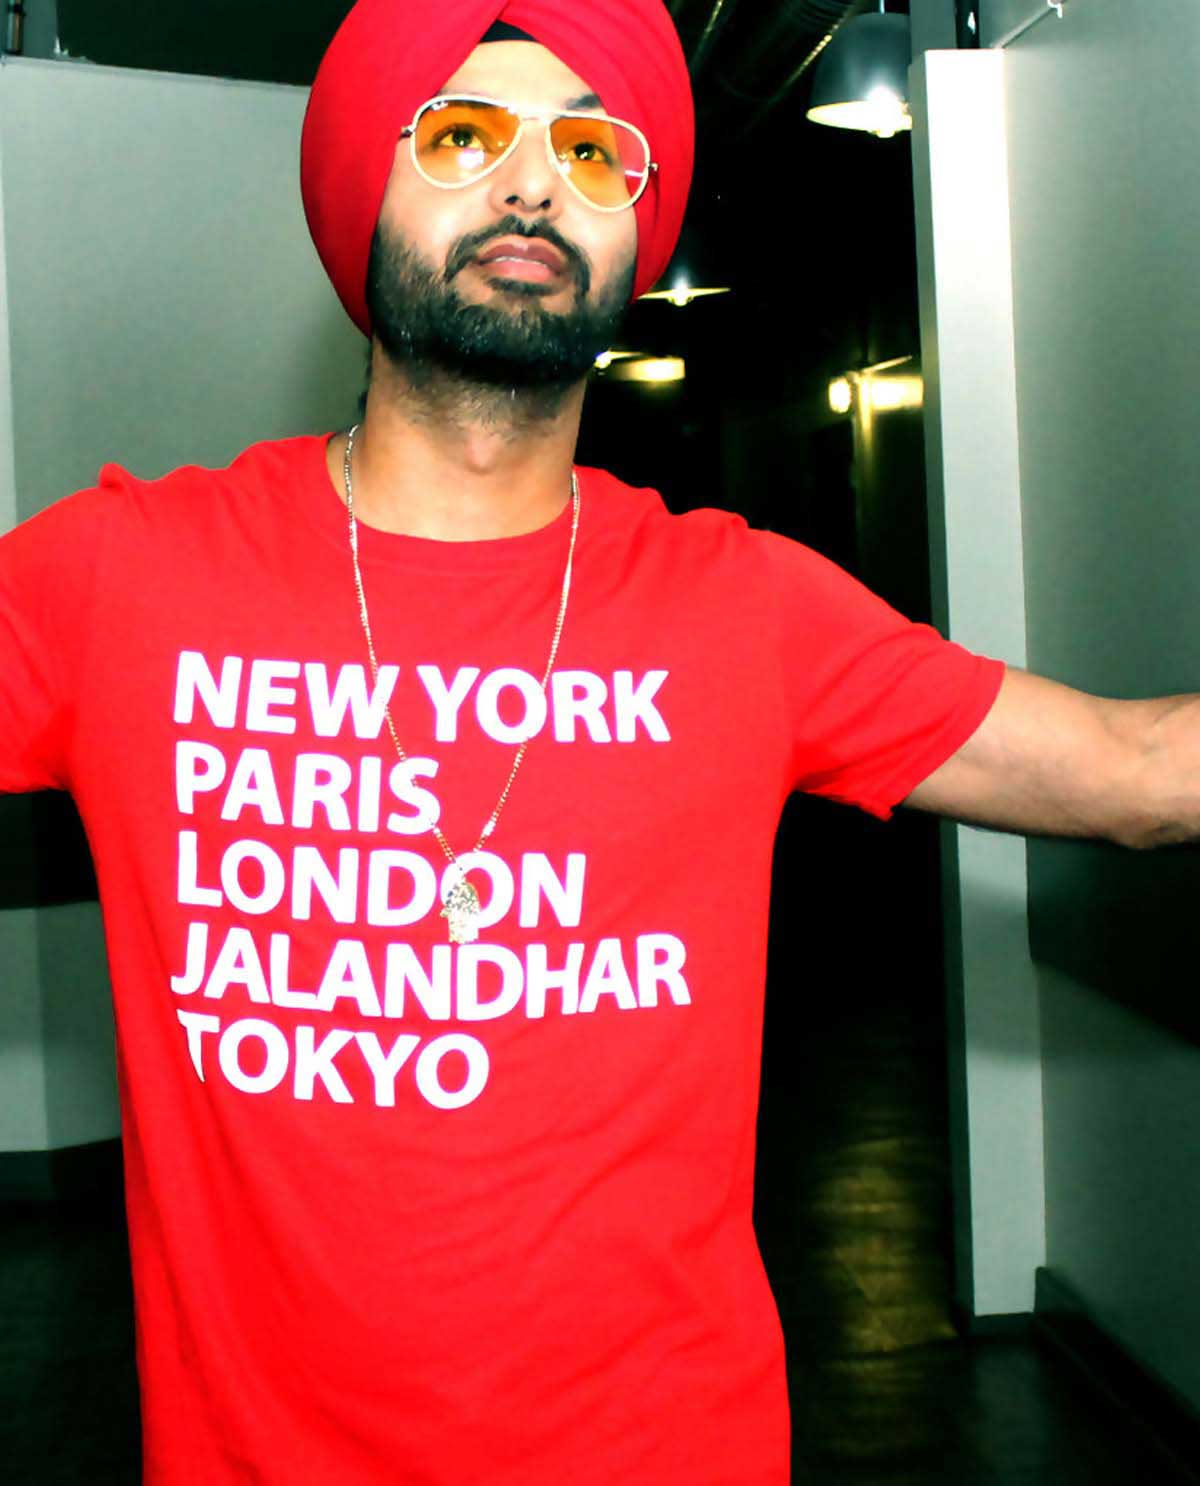 South Asian male wearing red fitted graphic design t.shirt with famous cities listed on front